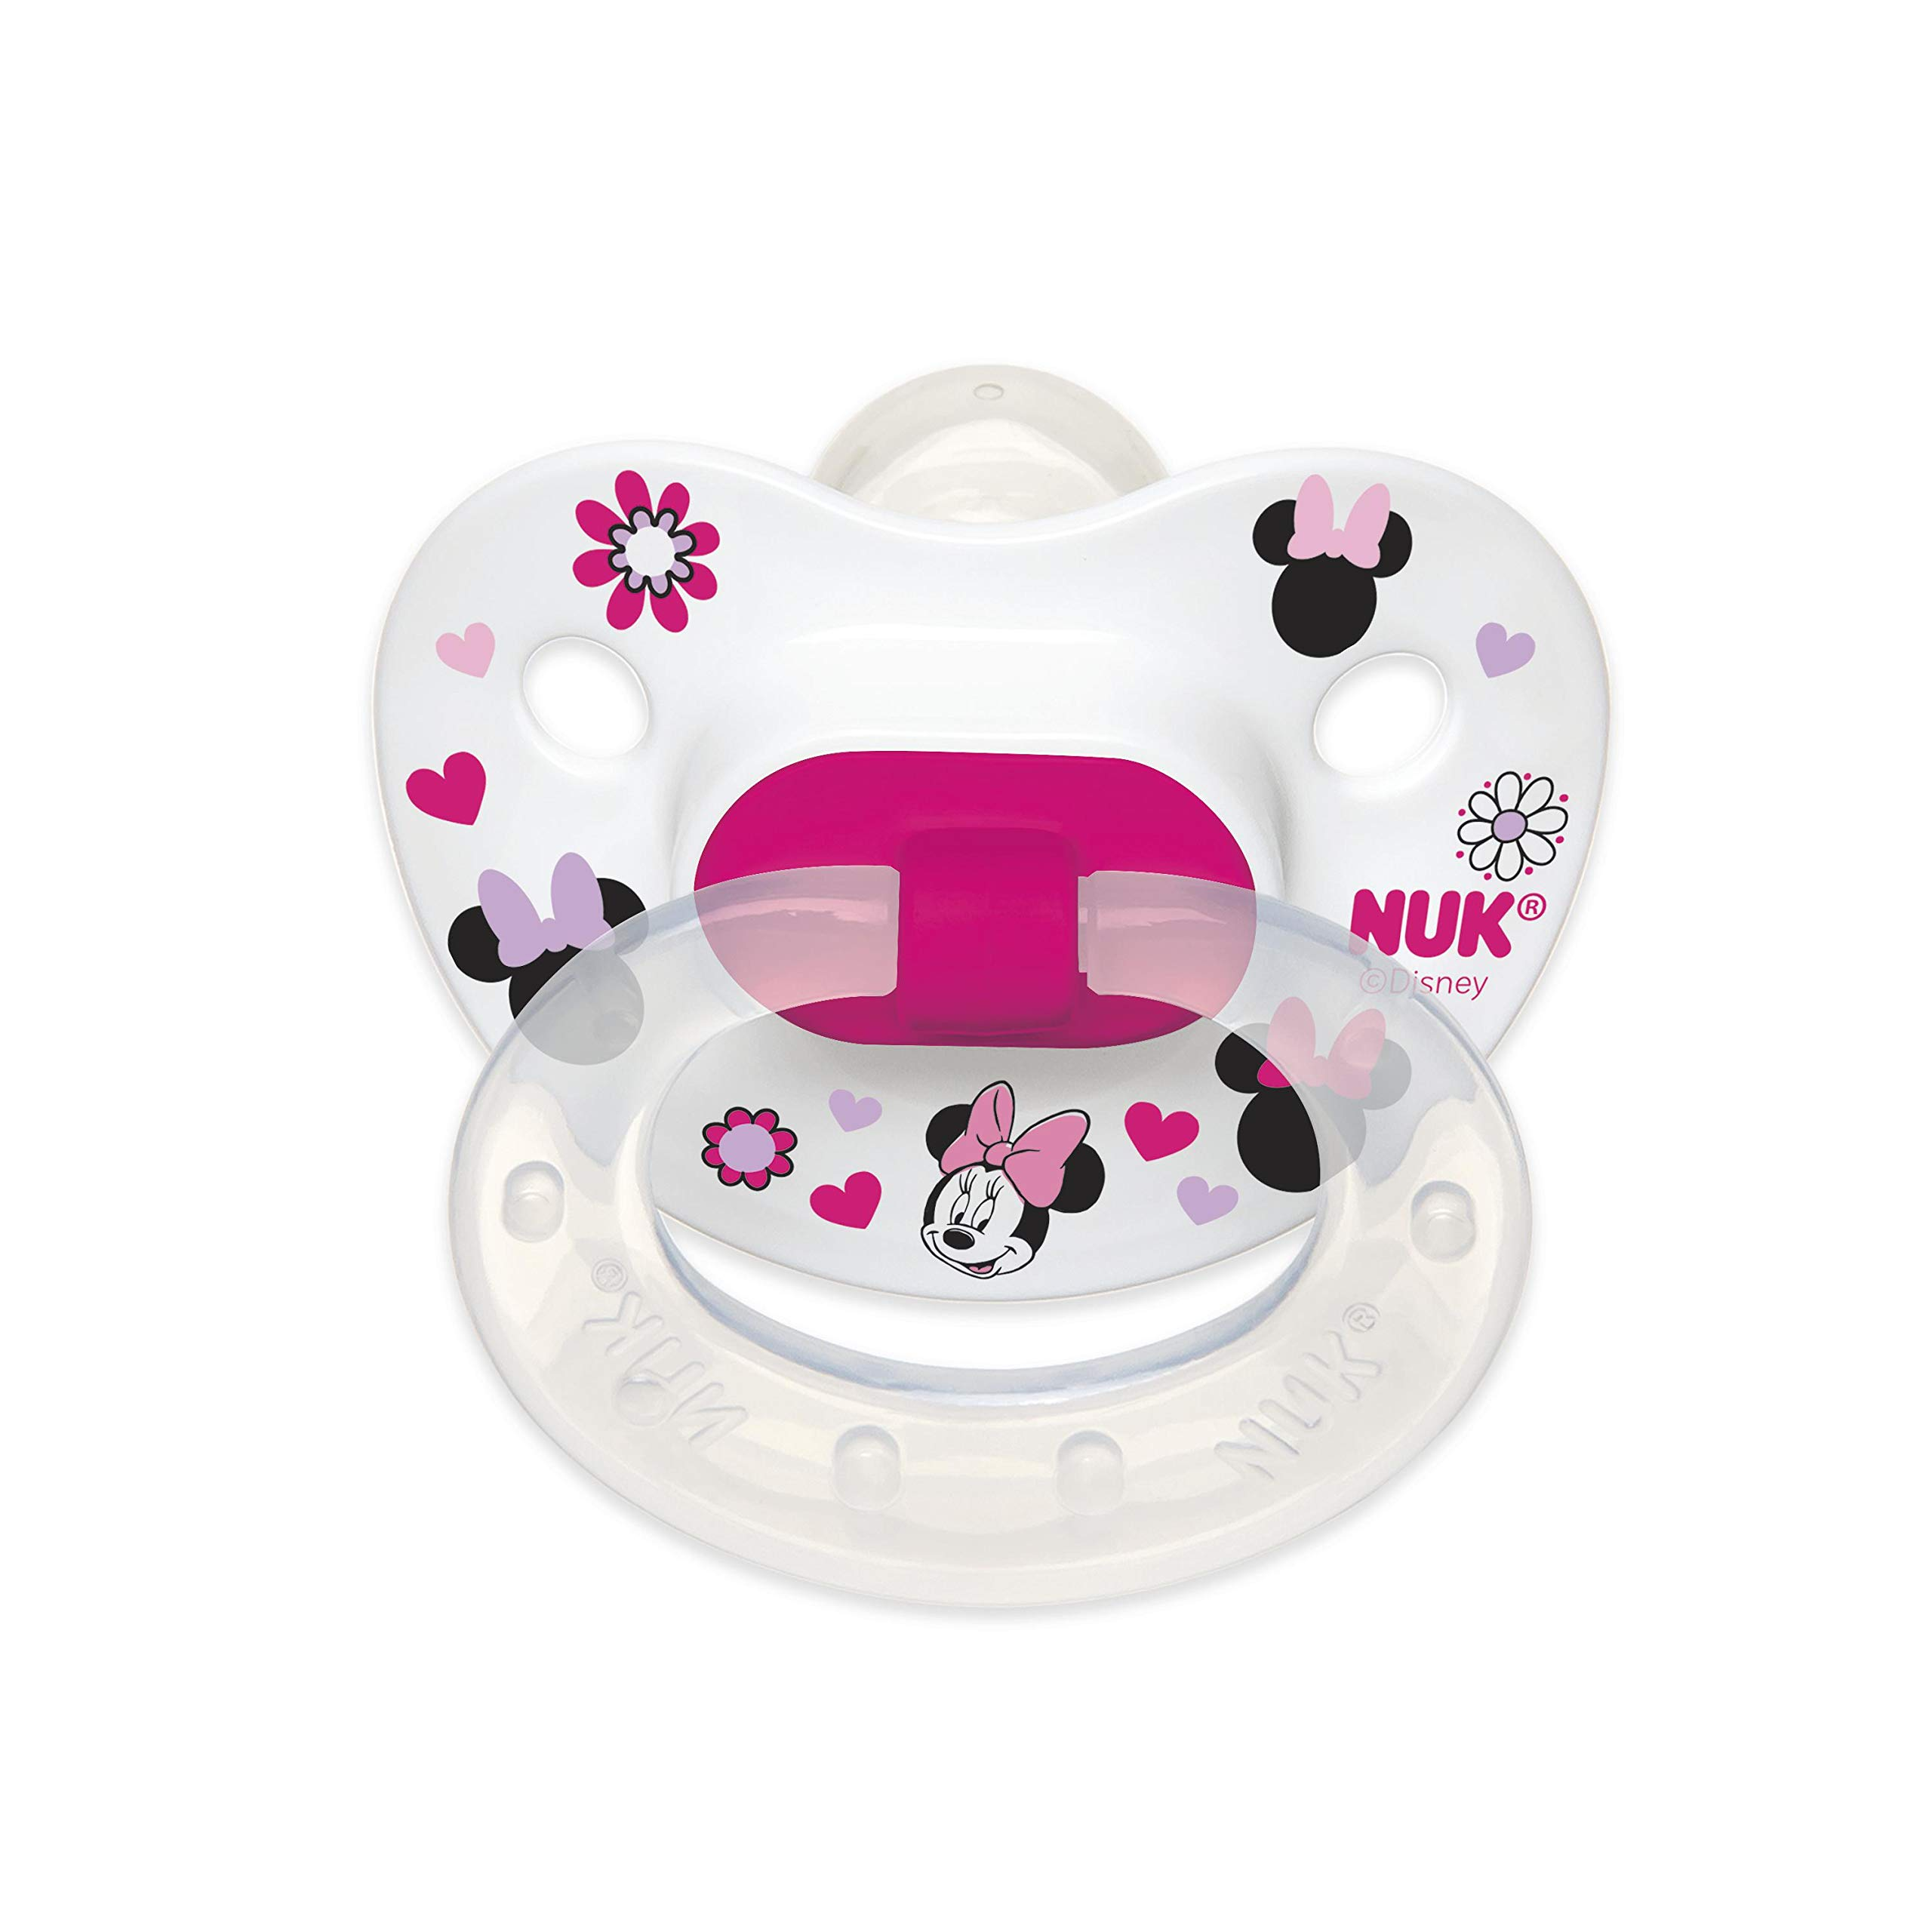 Amazon.com : NUK Airflow Orthodontic Pacifier 6-18 Months, 2 ...